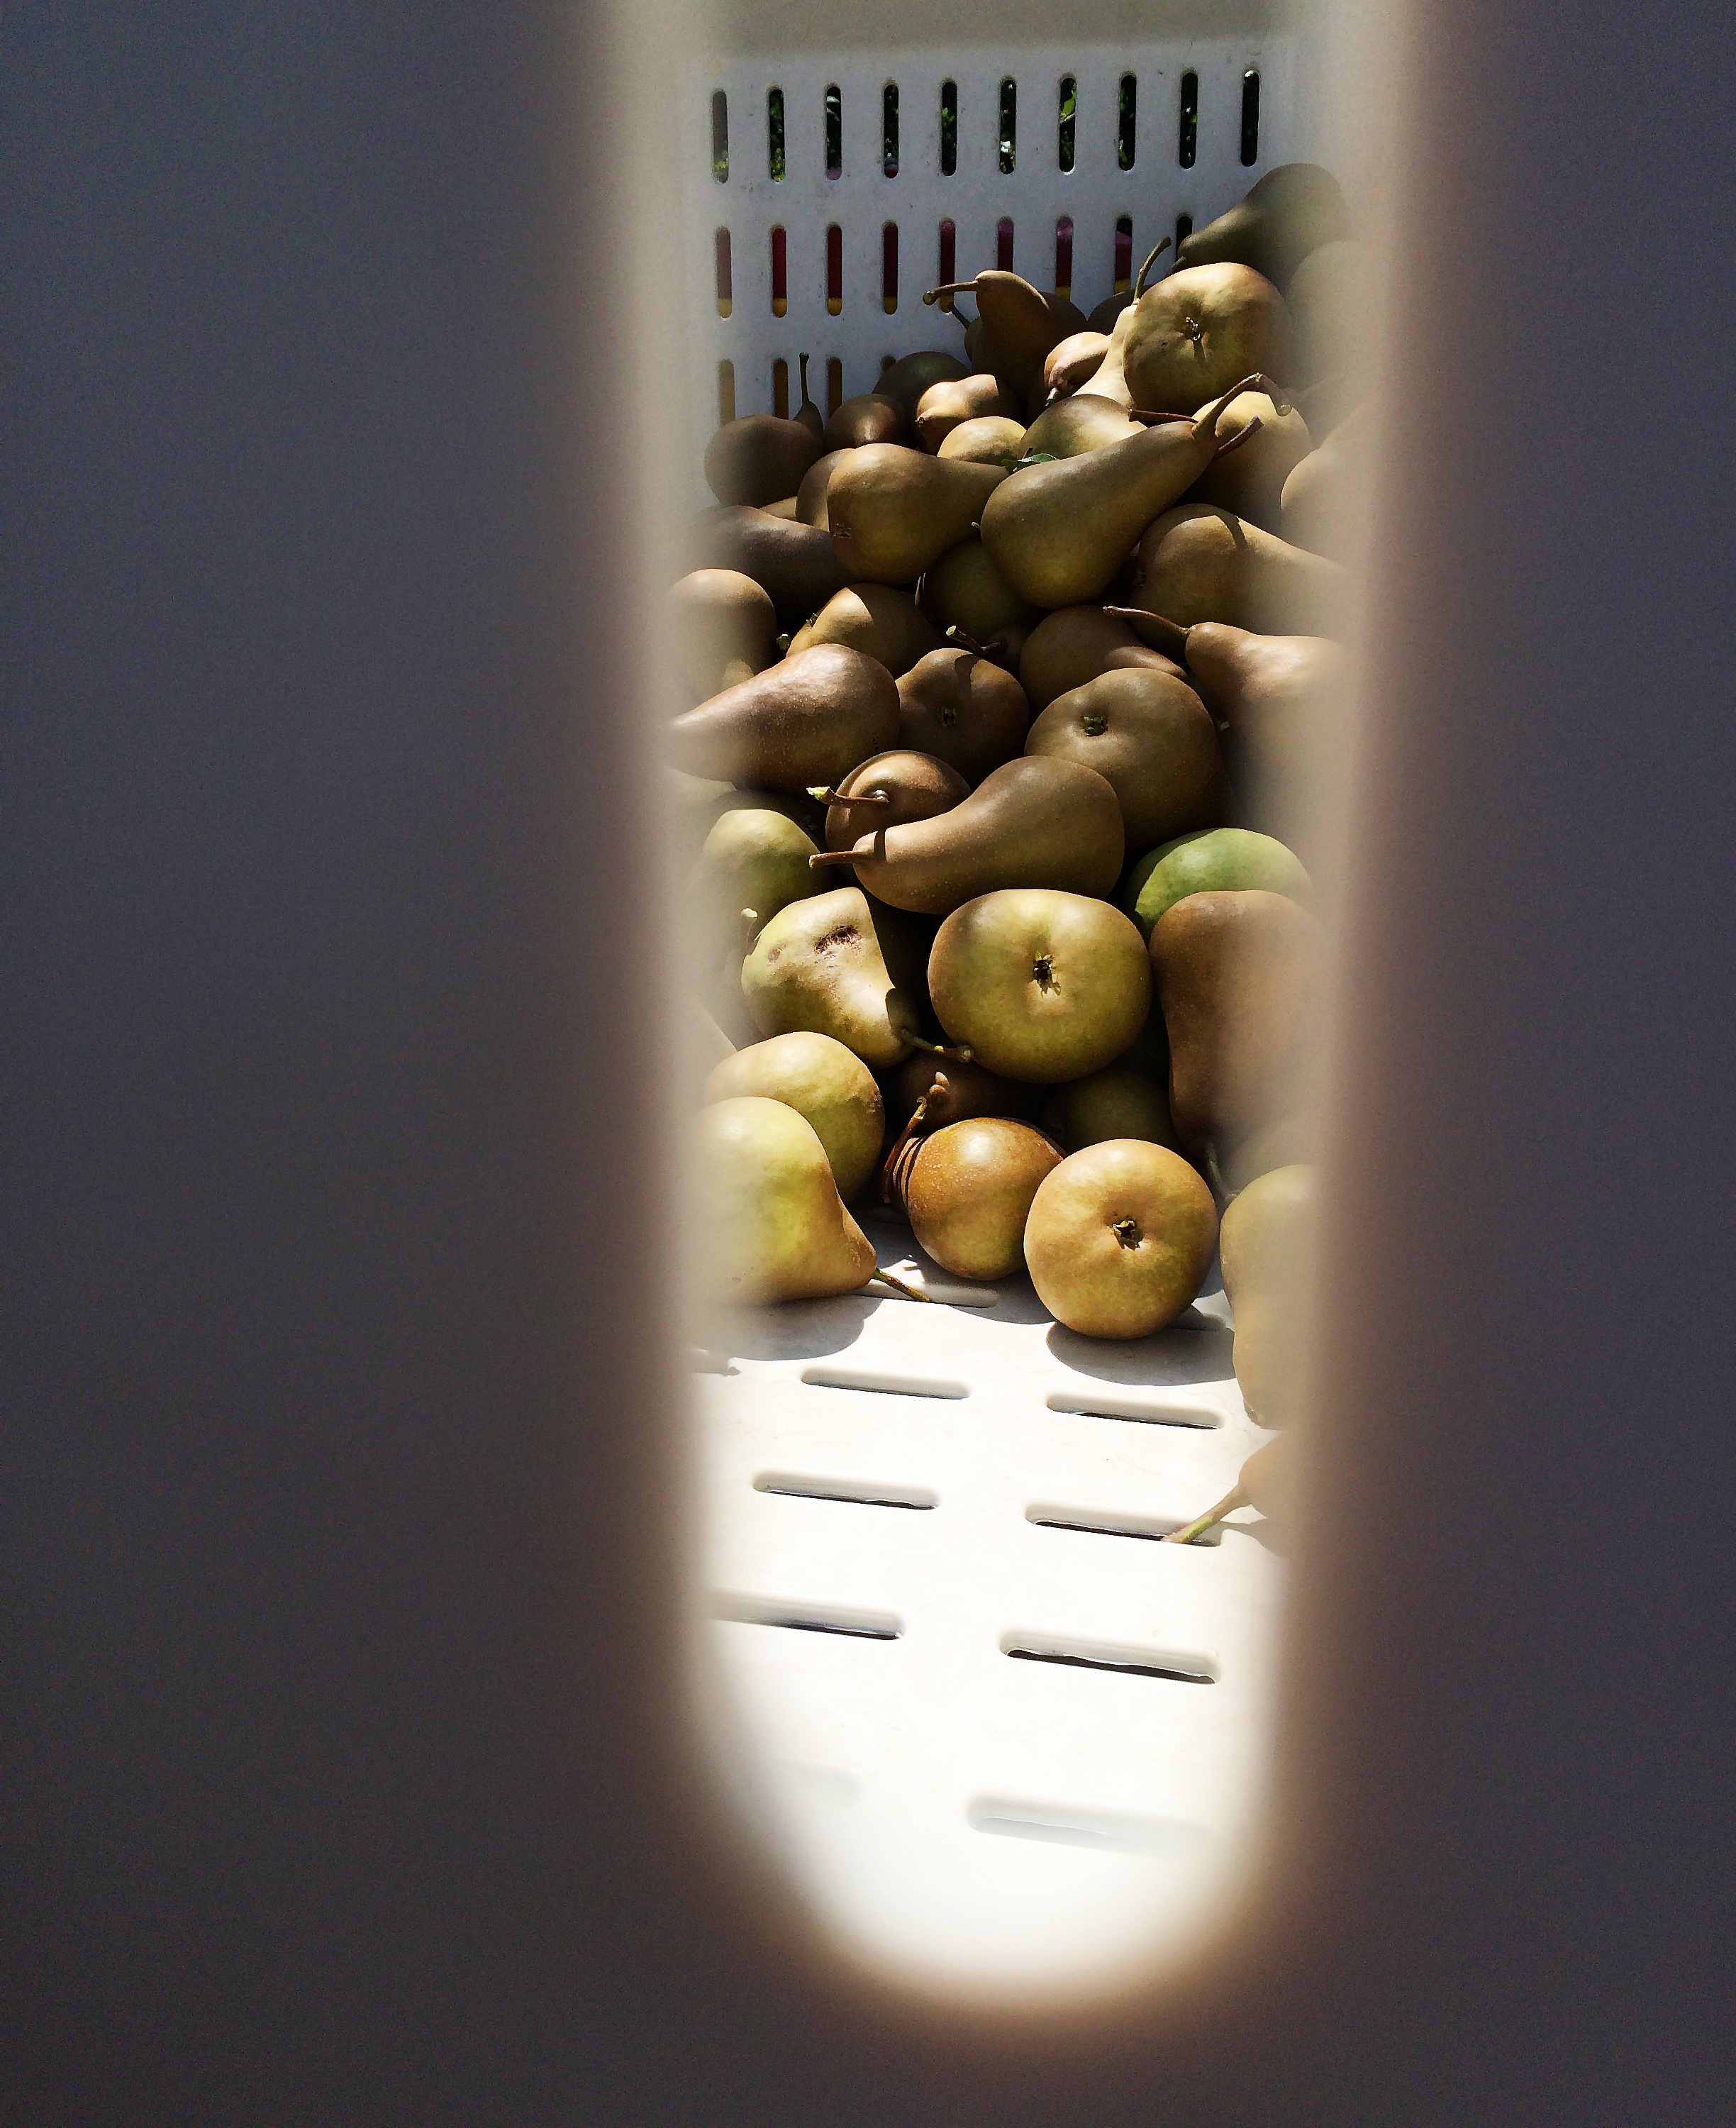 california pears peek through crate